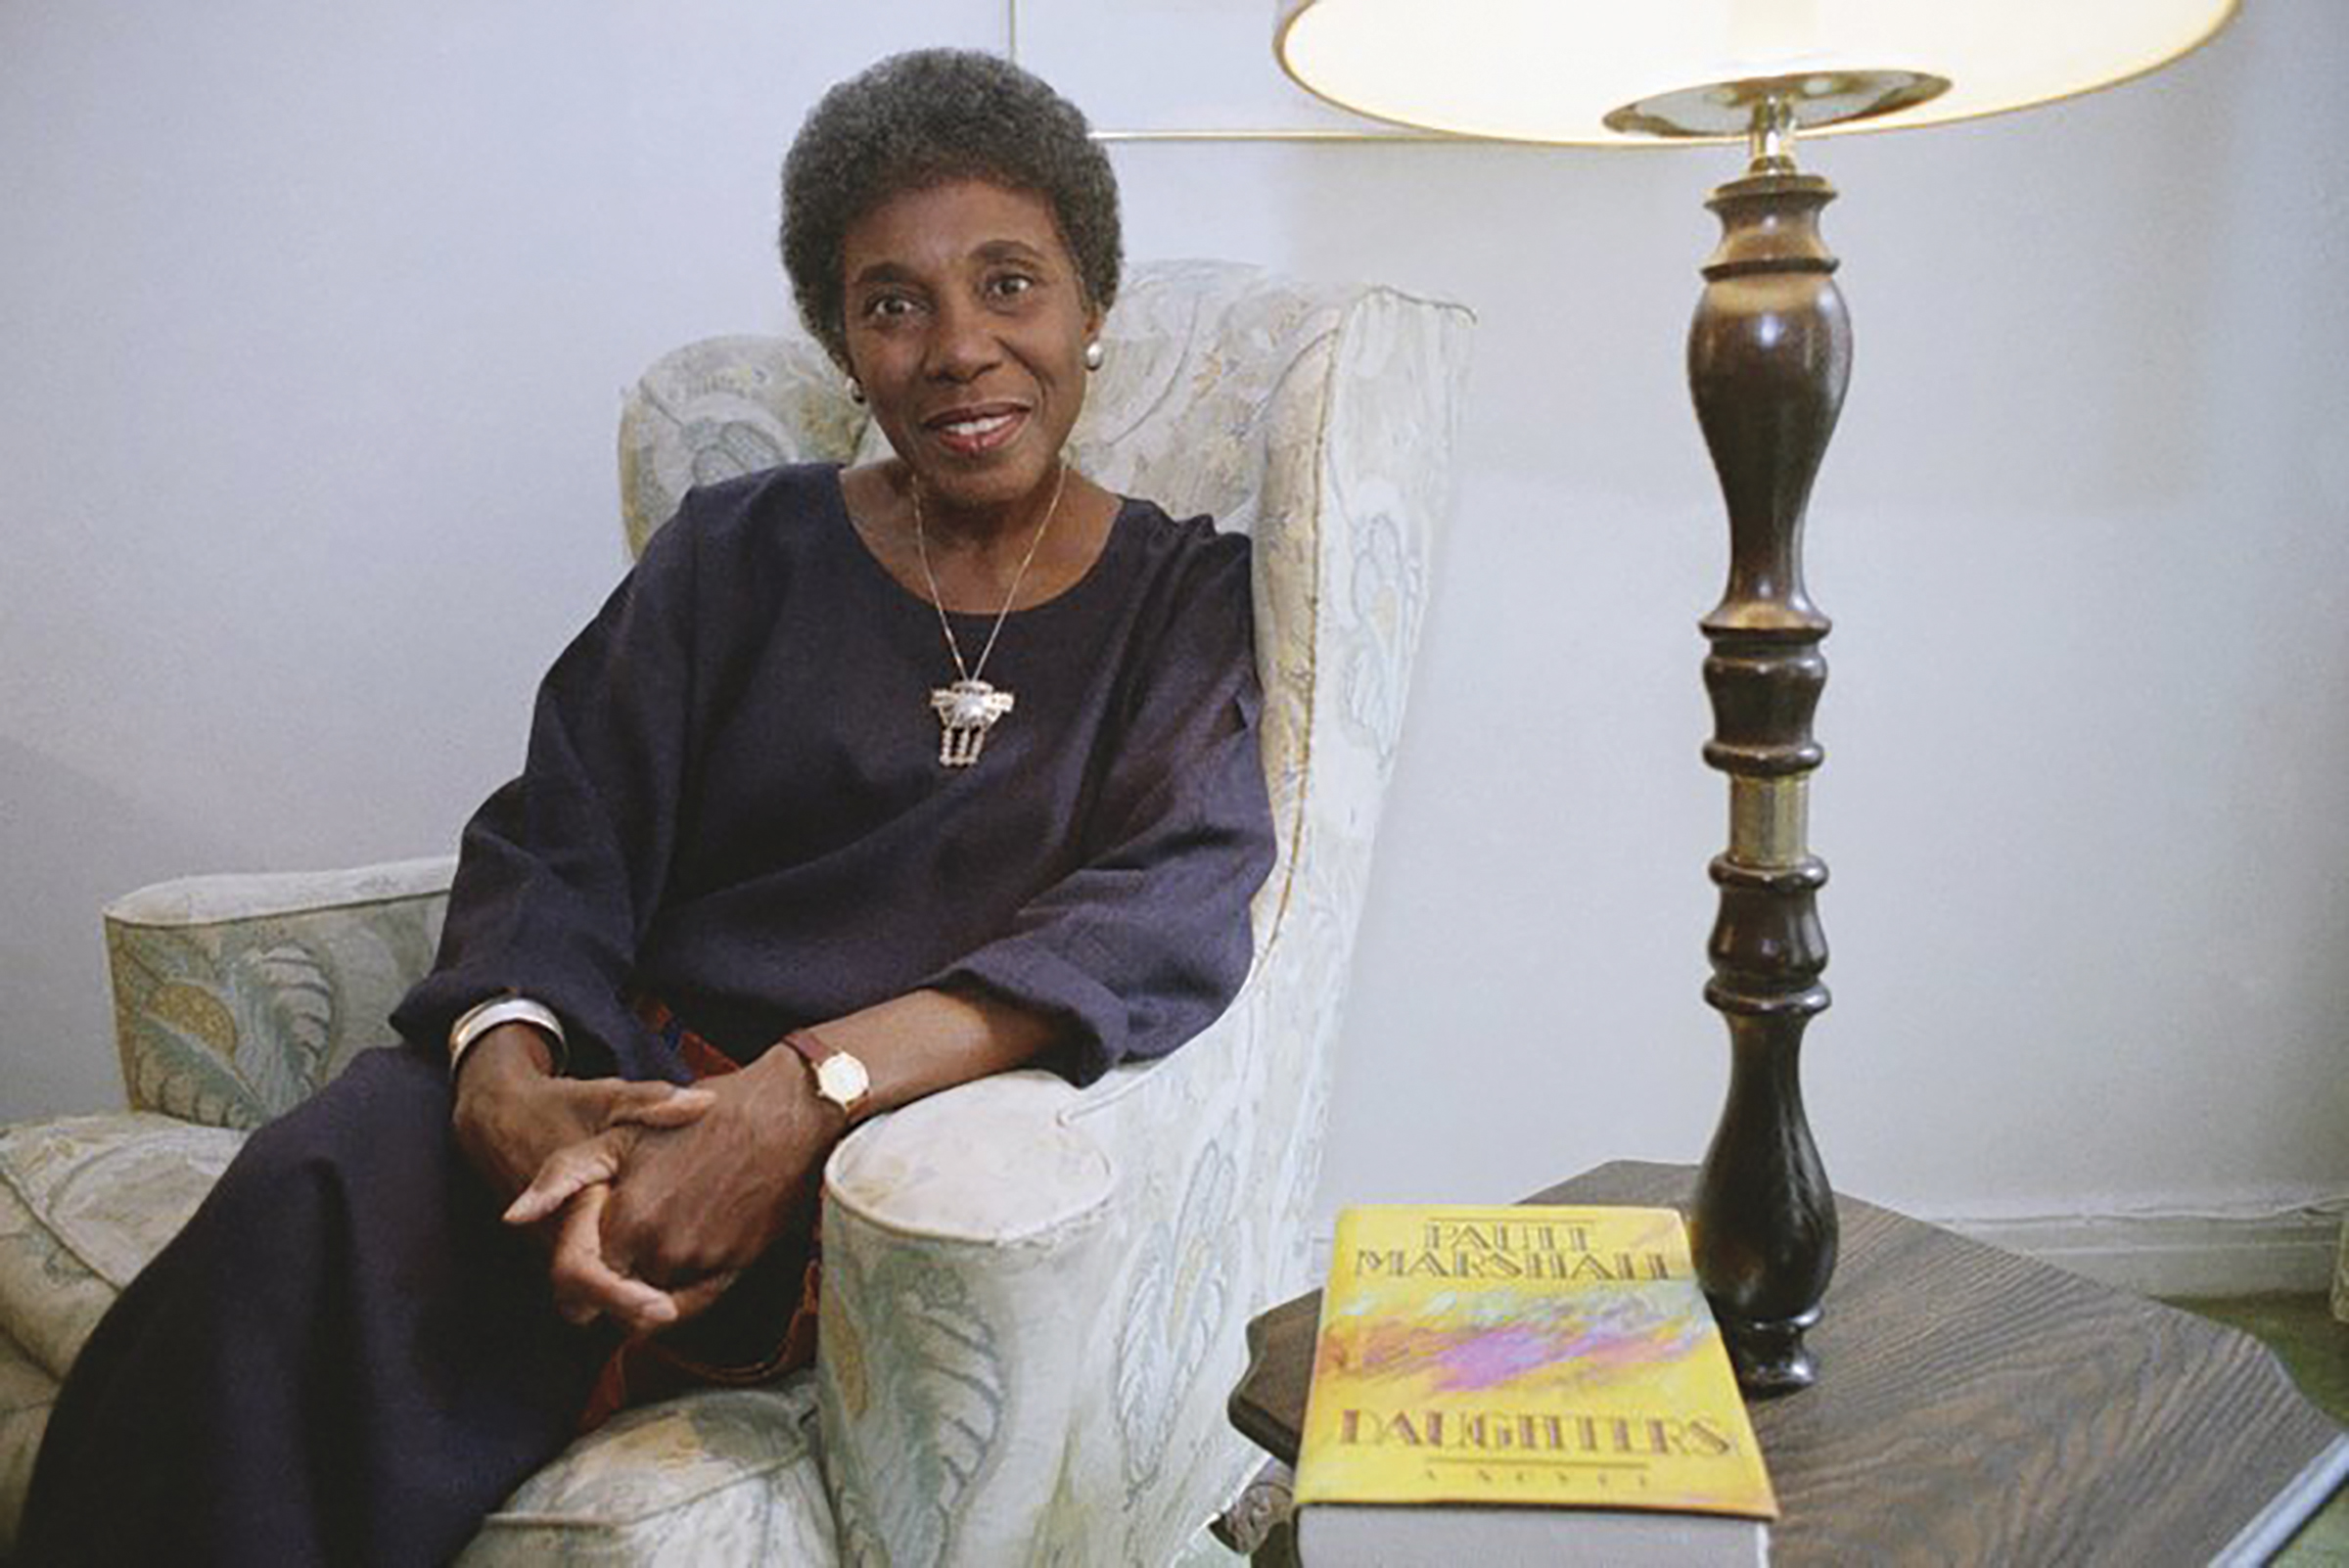 FILE - In this Nov. 22, 1991 file photo, author Paule Marshall poses during an interview, in New York. The acclaimed fiction writer has died at 90. Marshall's son, Evan K. Marshall, told The Associated Press that she died Monday, Aug. 12, 2019 in Richmond, Va. Marshall was an exuberant and sharpened storyteller who drew upon classic and vernacular literature and her mother's kitchen conversations for such fiction as